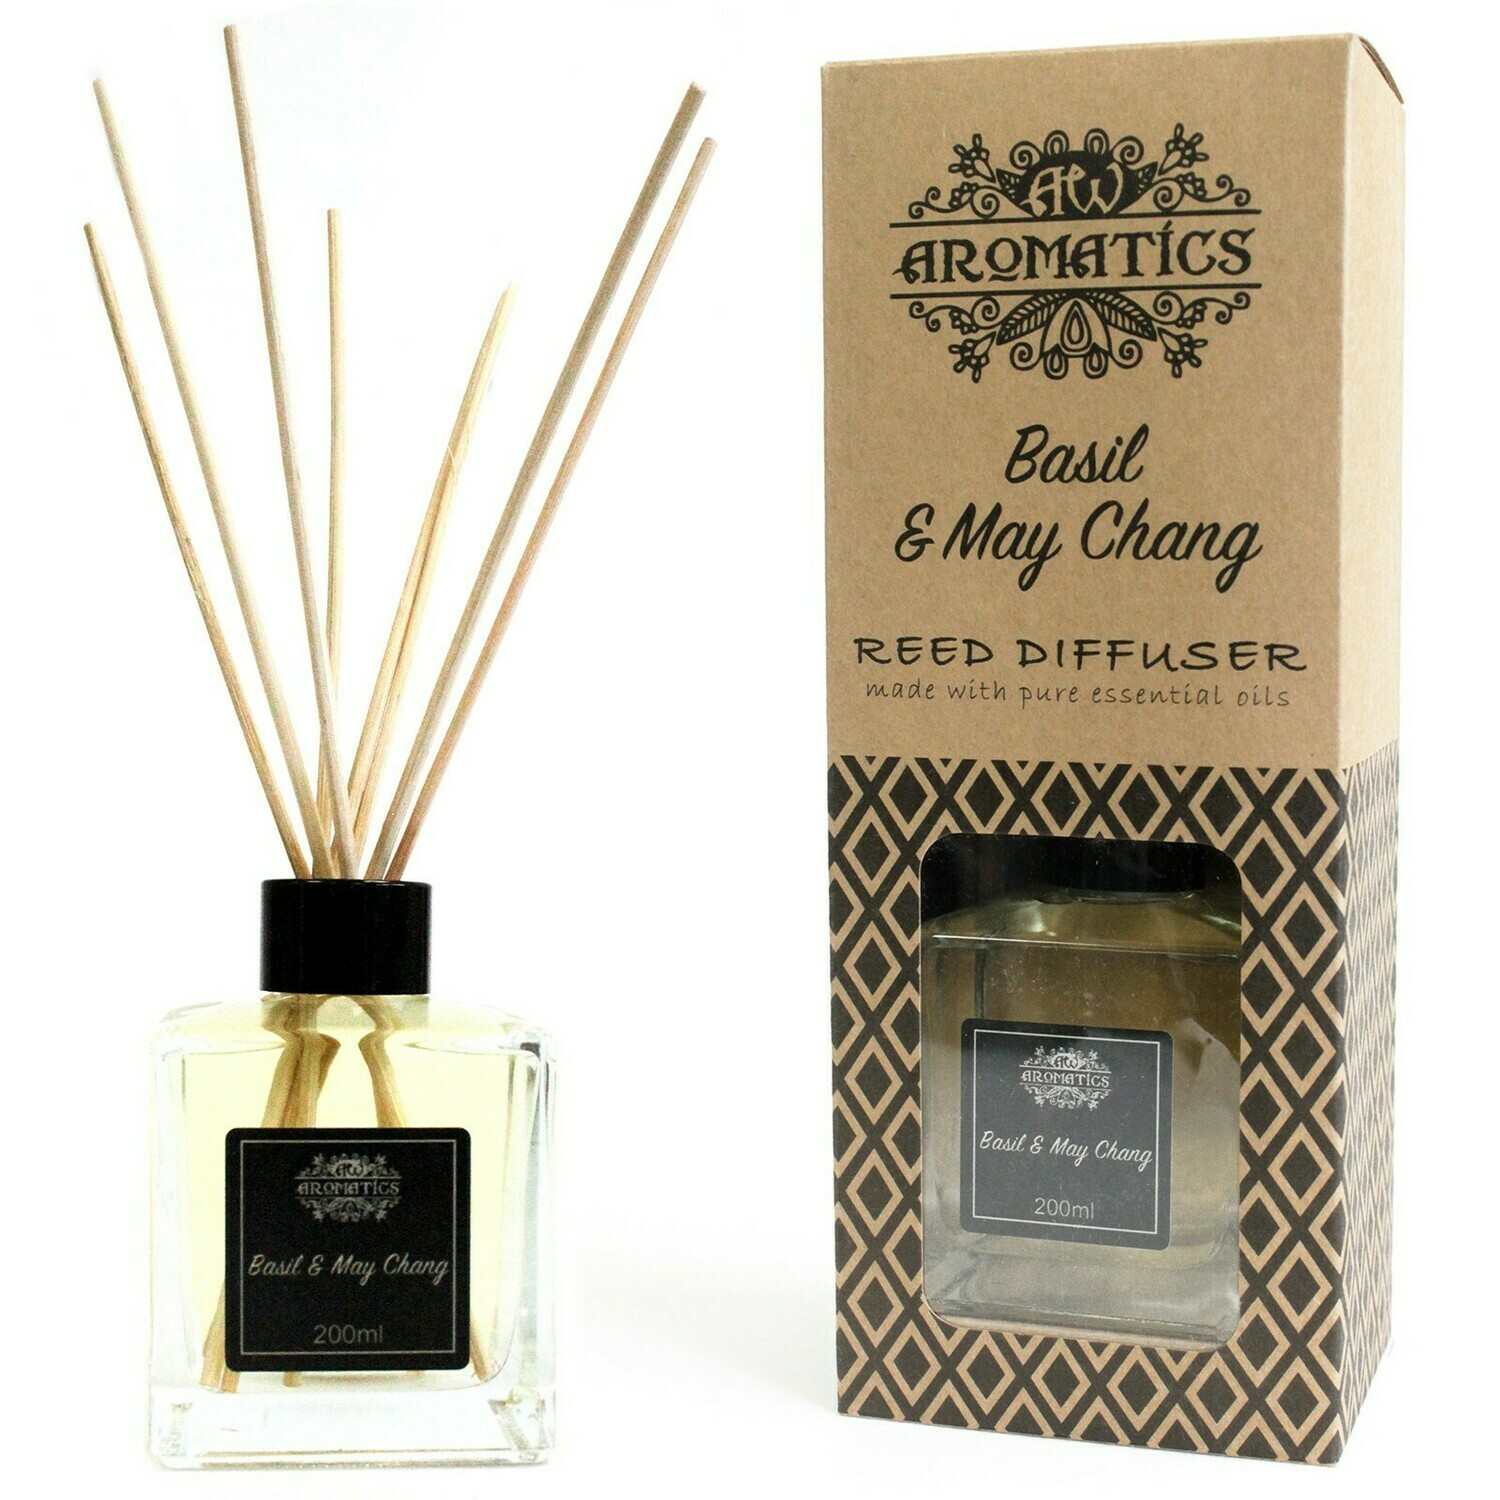 Basil & Maychang Essential Oil Reed Diffuser 200 ml